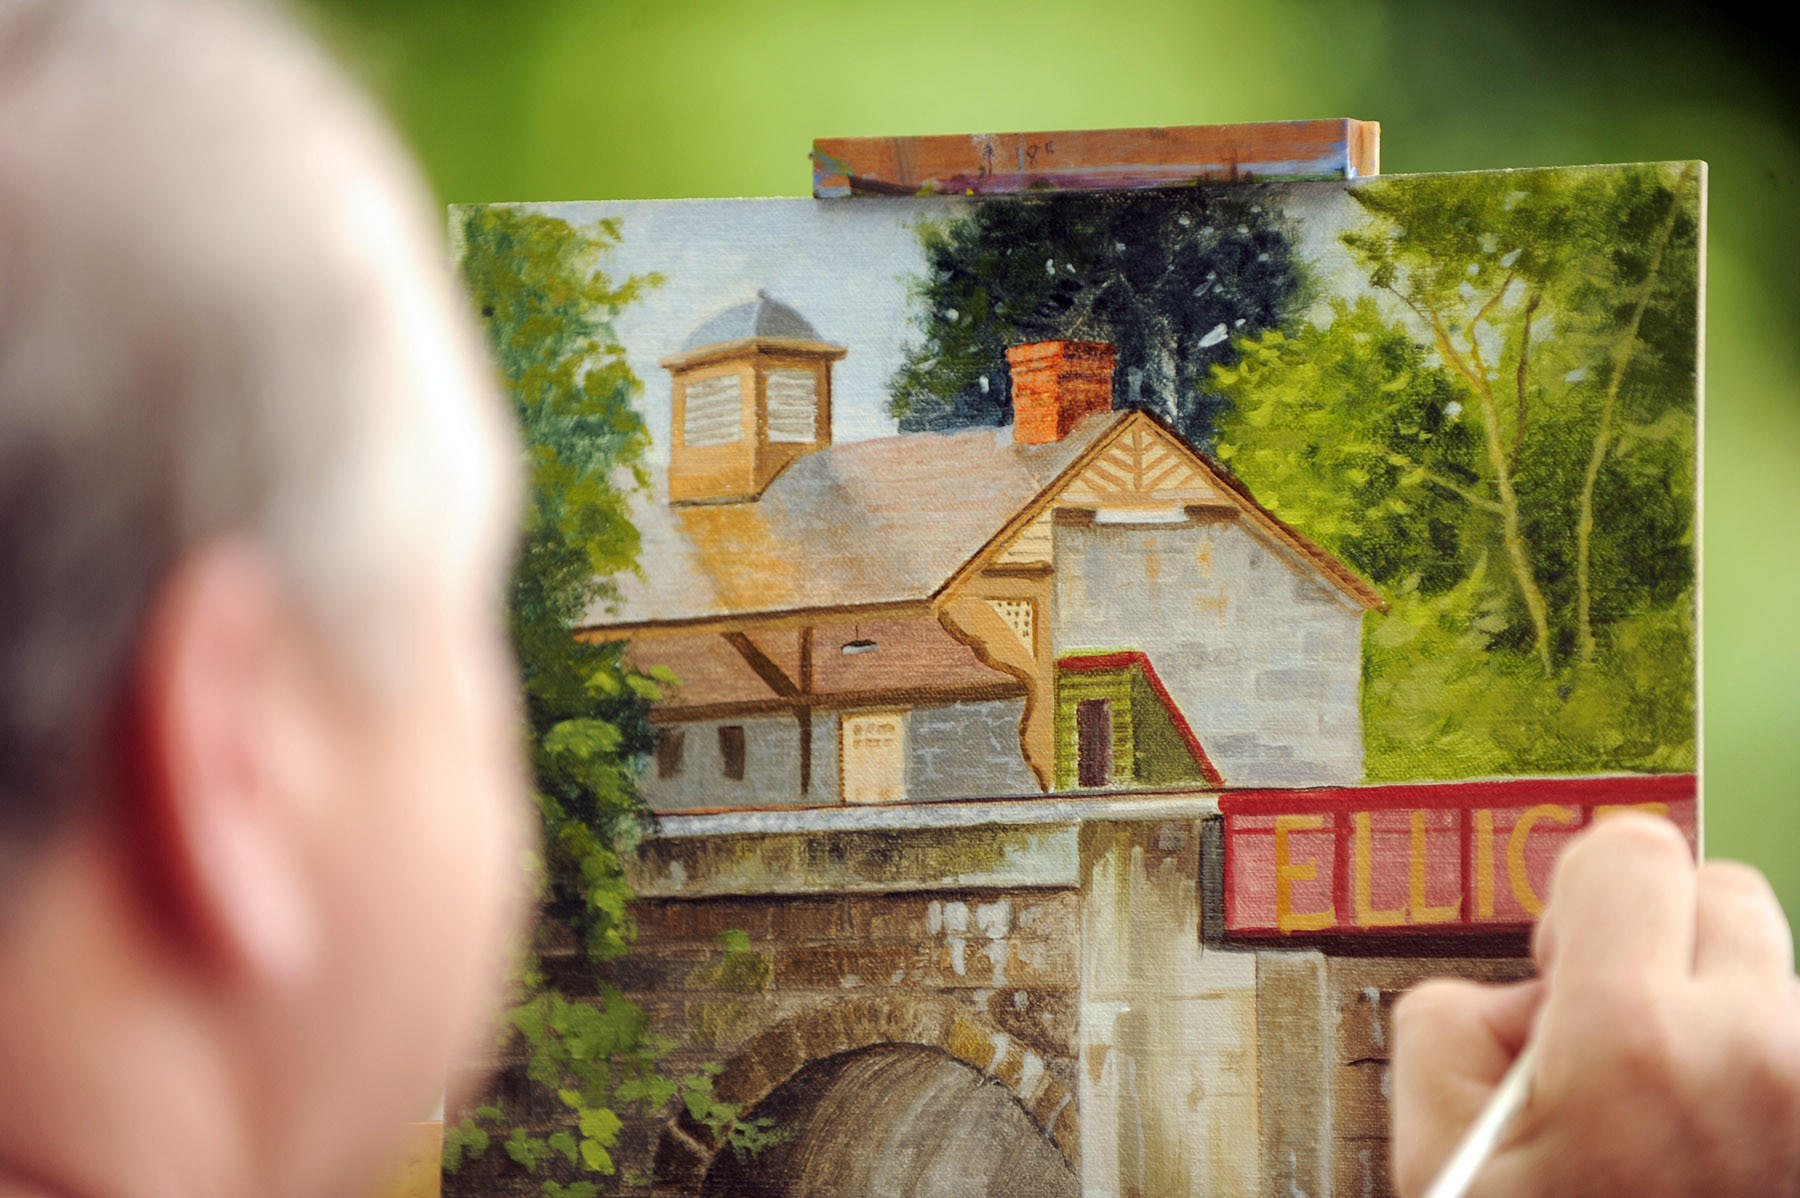 Sid Branham of Relay works on a painting of the historic Ellicott City train station and its surroundings during Paint It! Ellicott City.